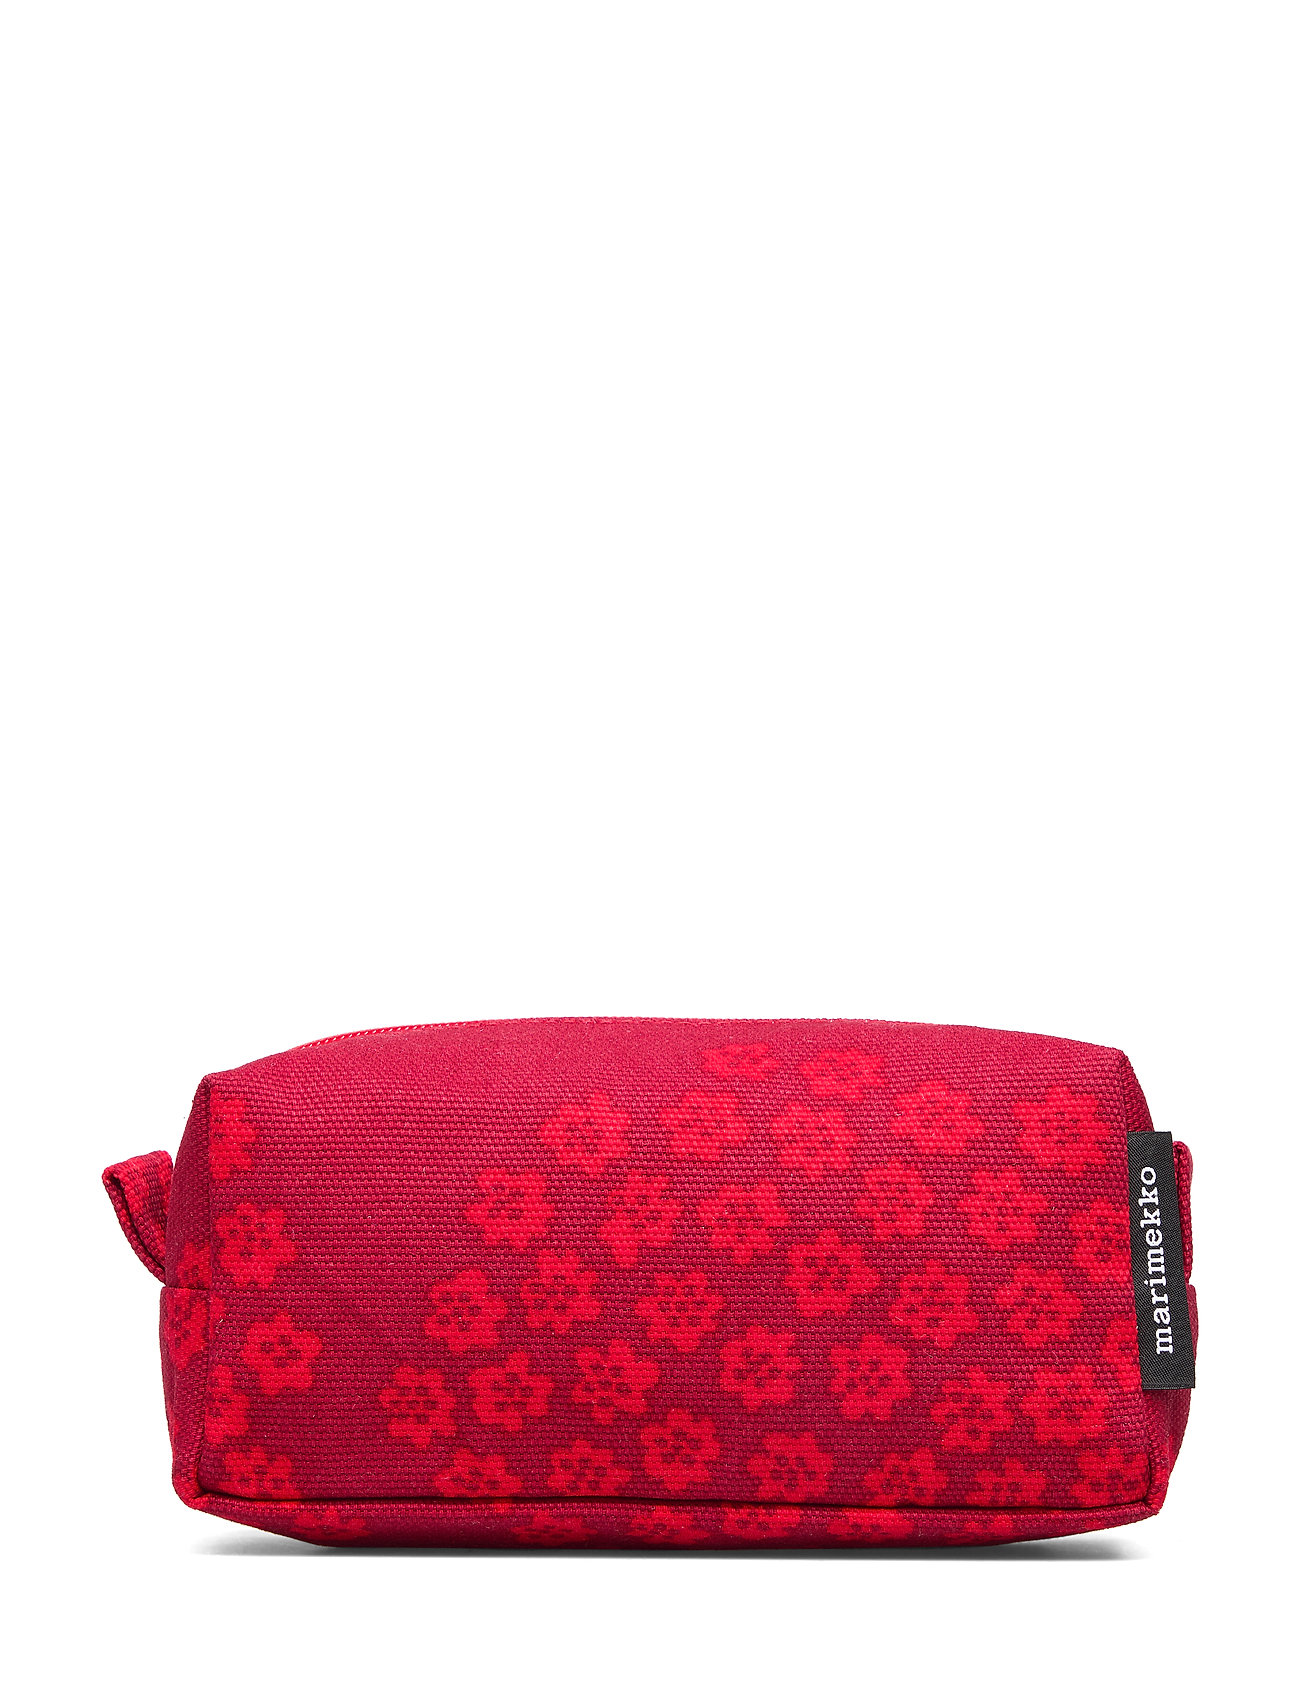 Marimekko Home Tiise Puketti cosmetic bag - DARK RED,RED,PINK